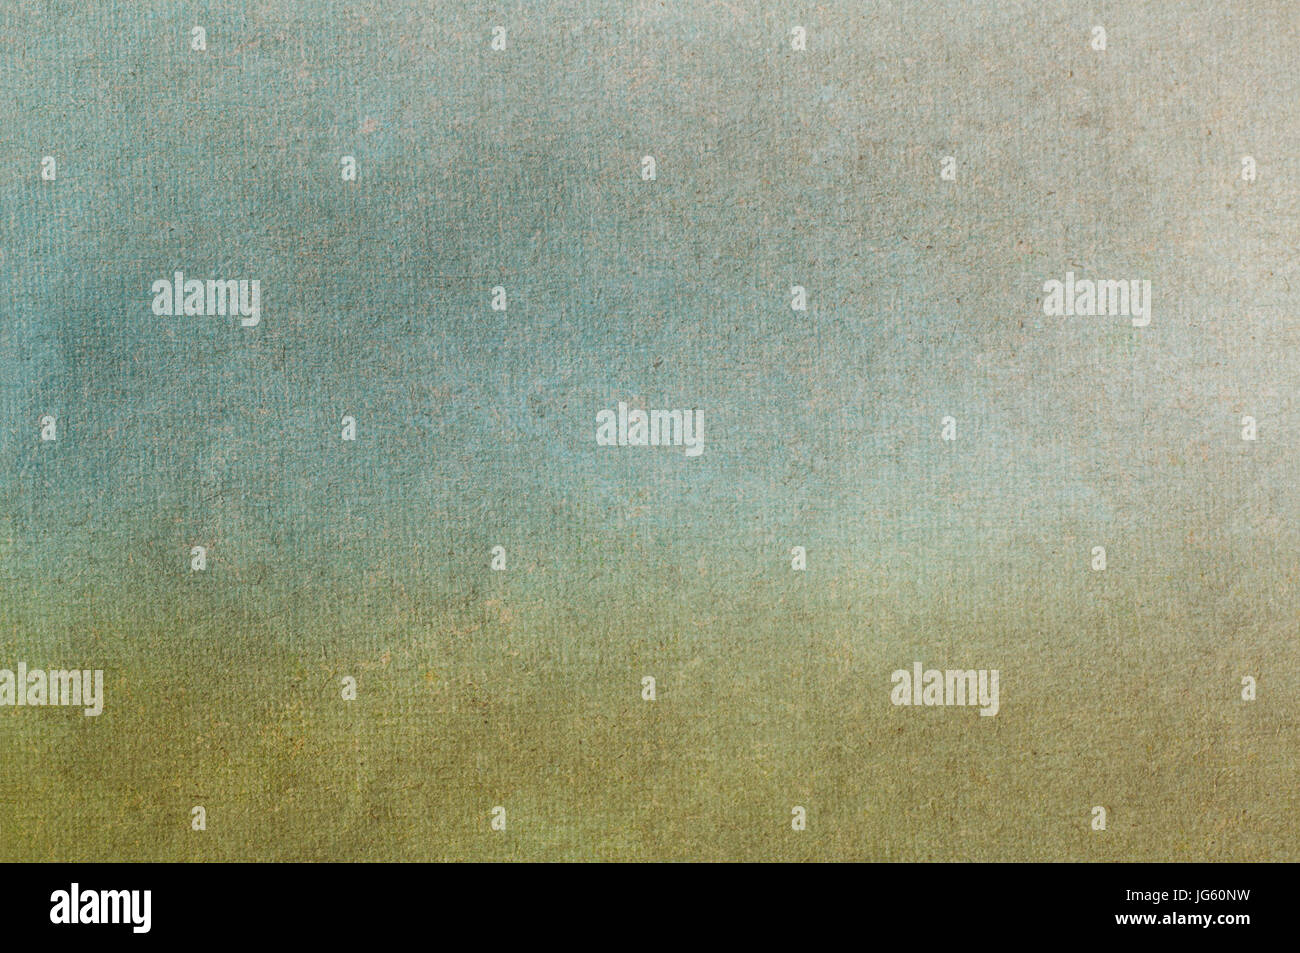 Mid-toned fibrous, paper texture with scratches, fibres and flecks visible. Blended, muted green and blue tones - Stock Image